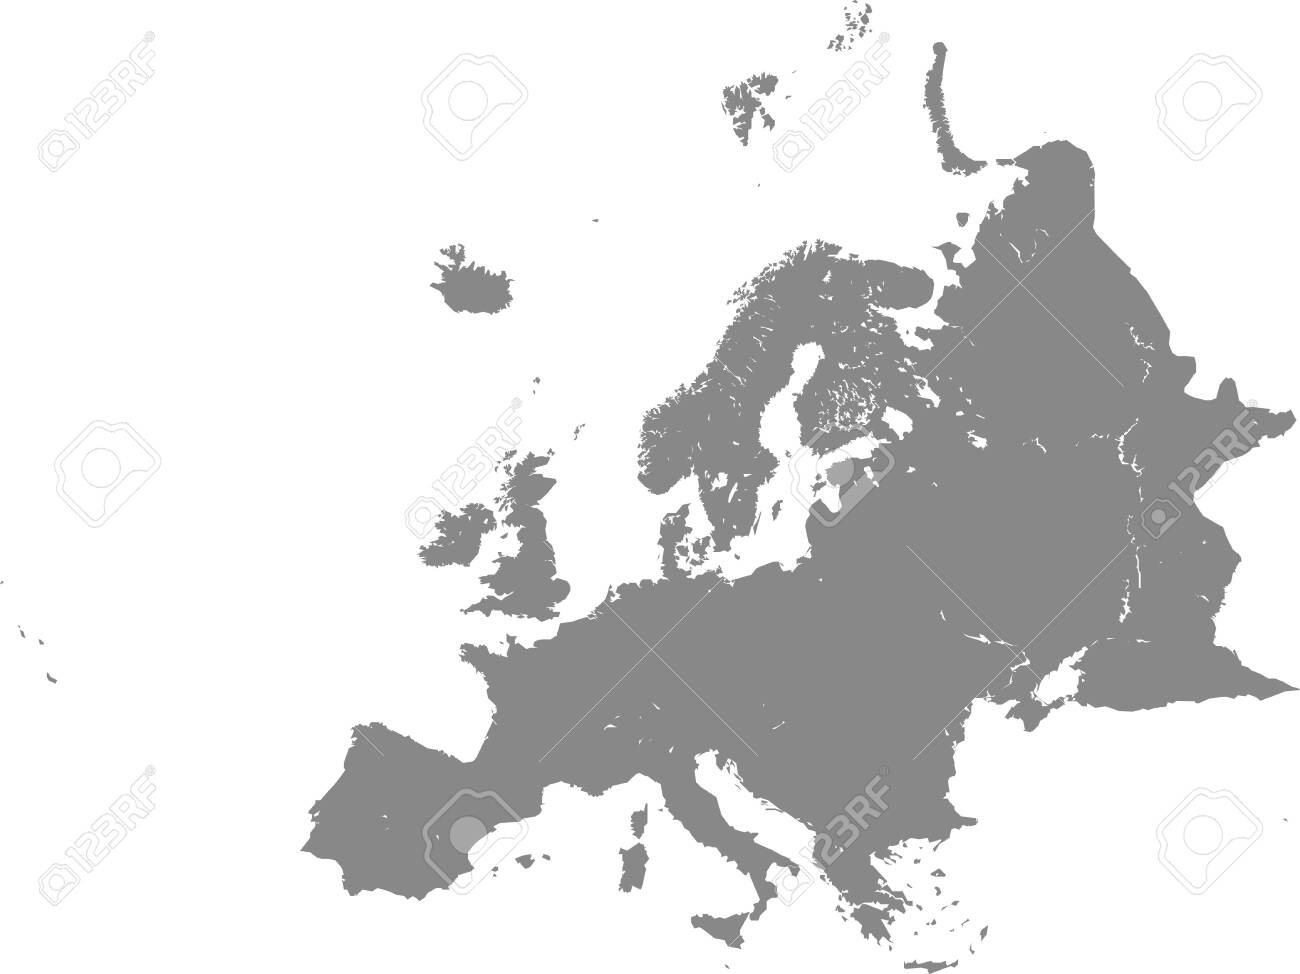 Detailed Grey Flat Blank Map of European Continent with Lakes - 147594553